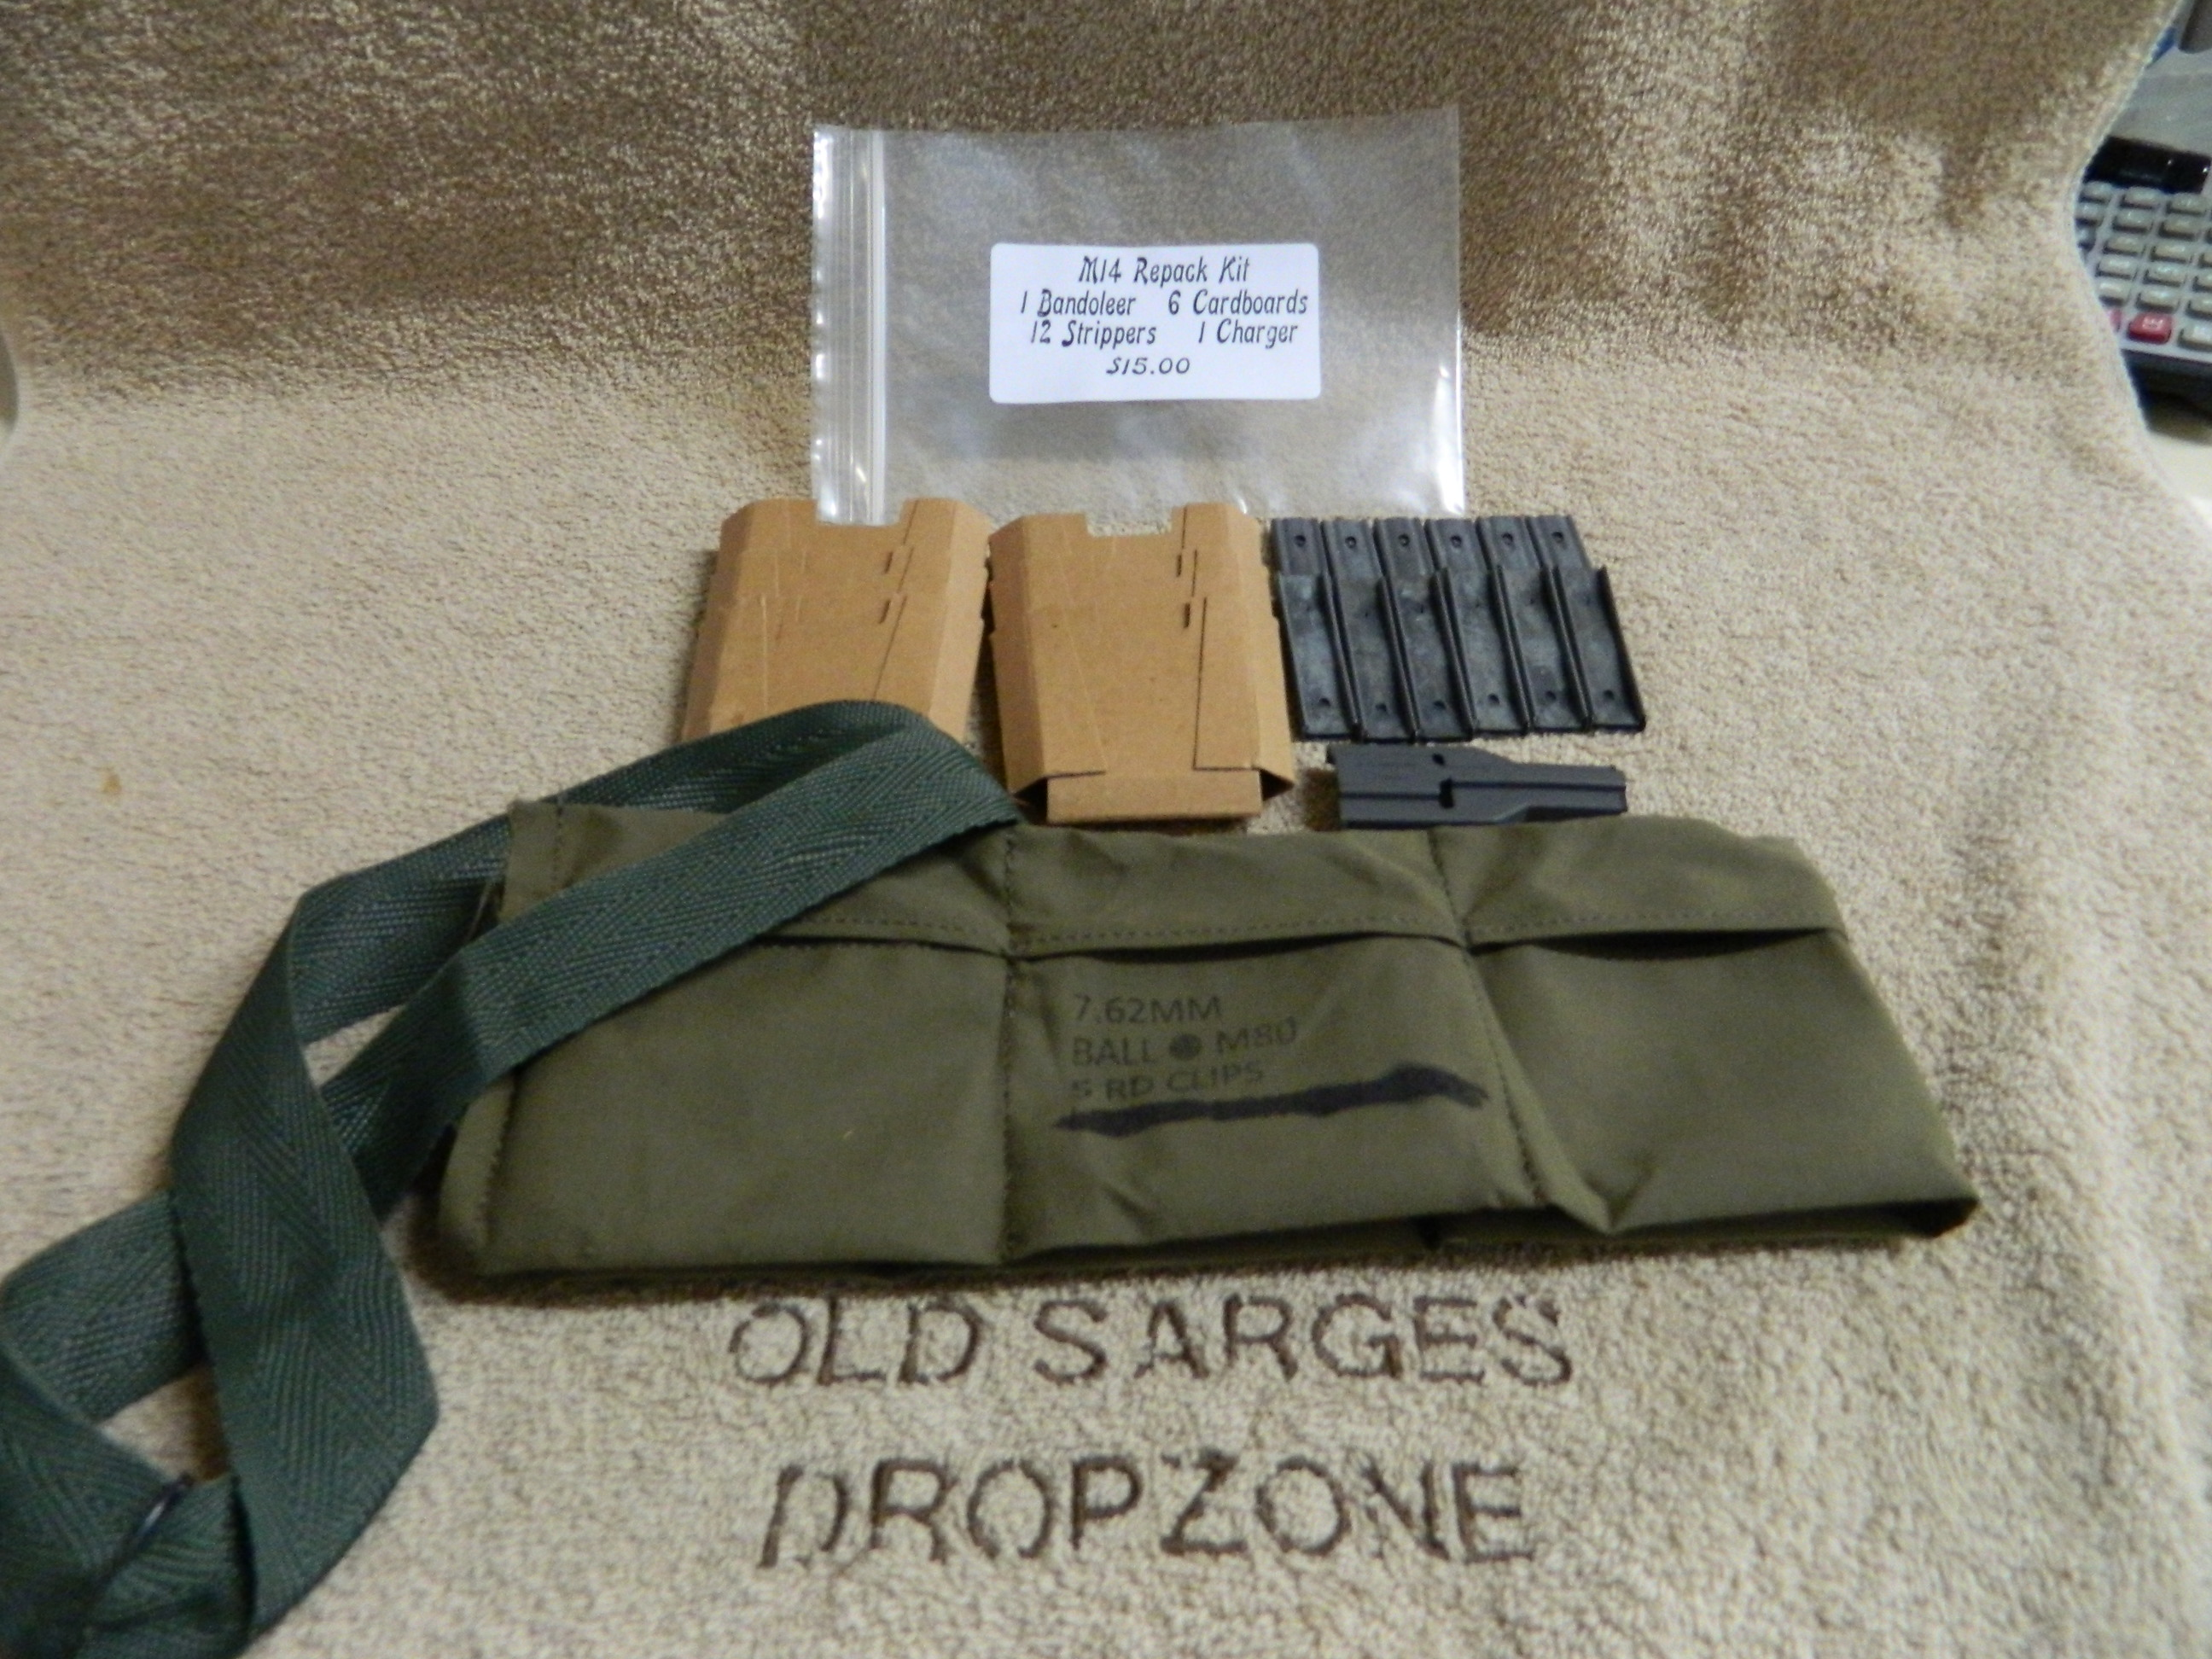 M14 .308 Repack Kit - 3 Ct.